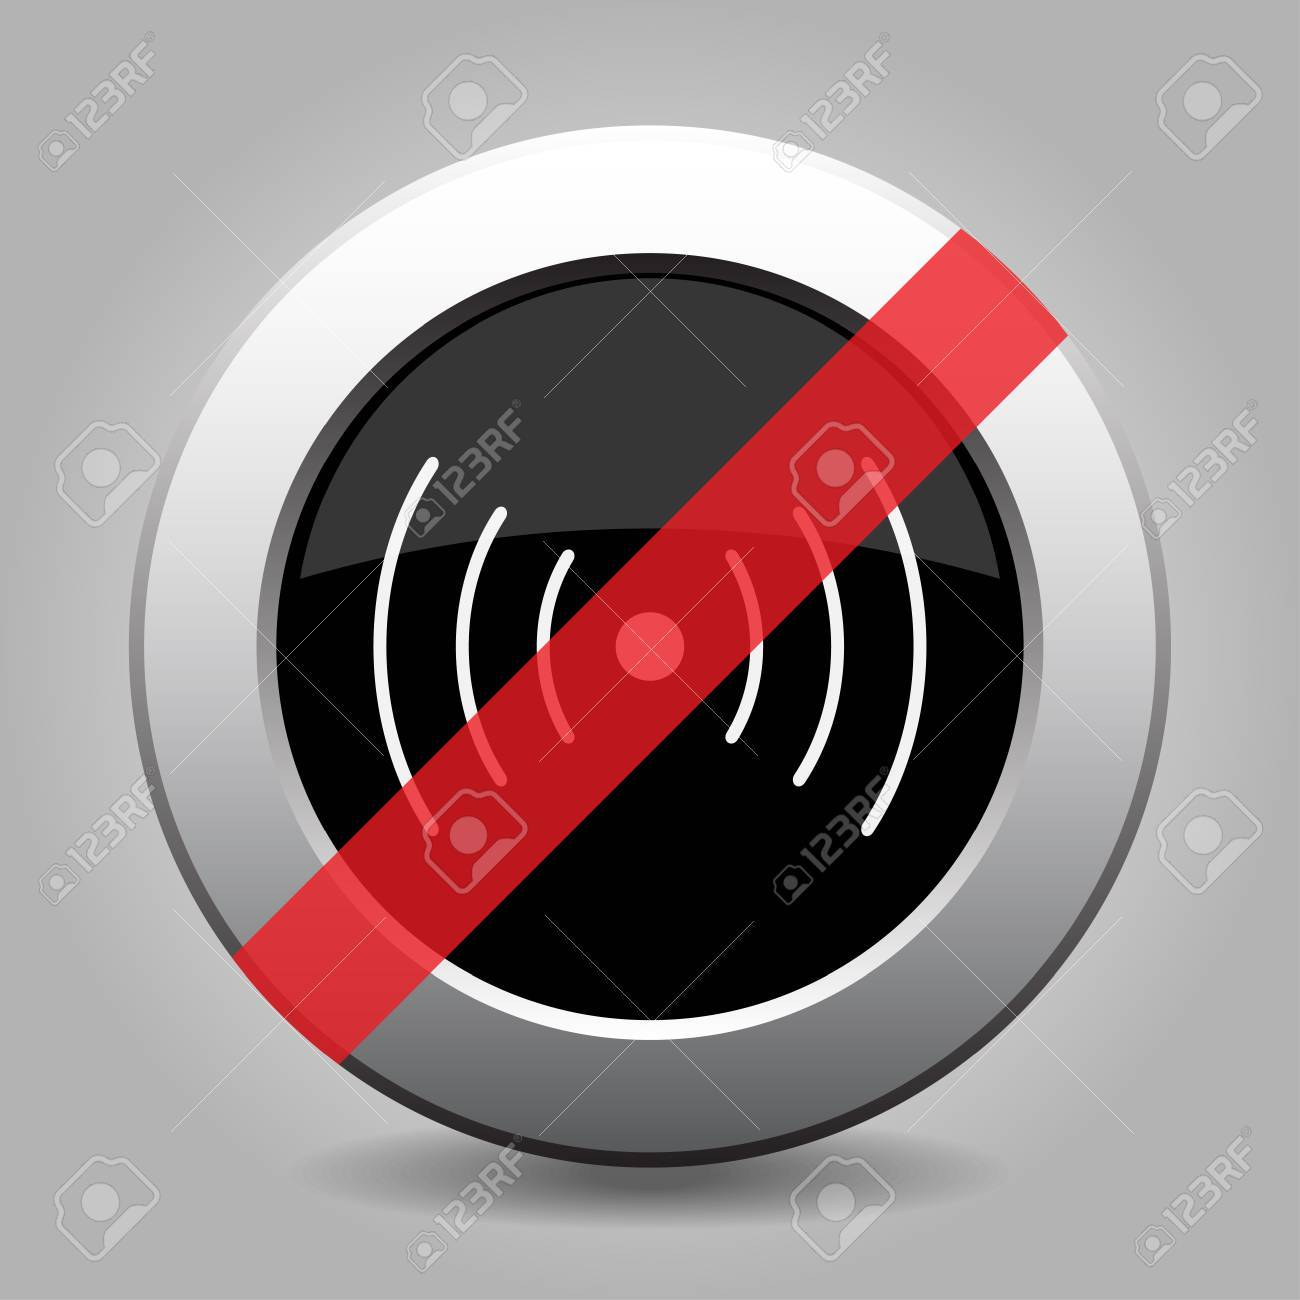 Gray Chrome Button With No Sound Or Vibration Symbol - Banned ...